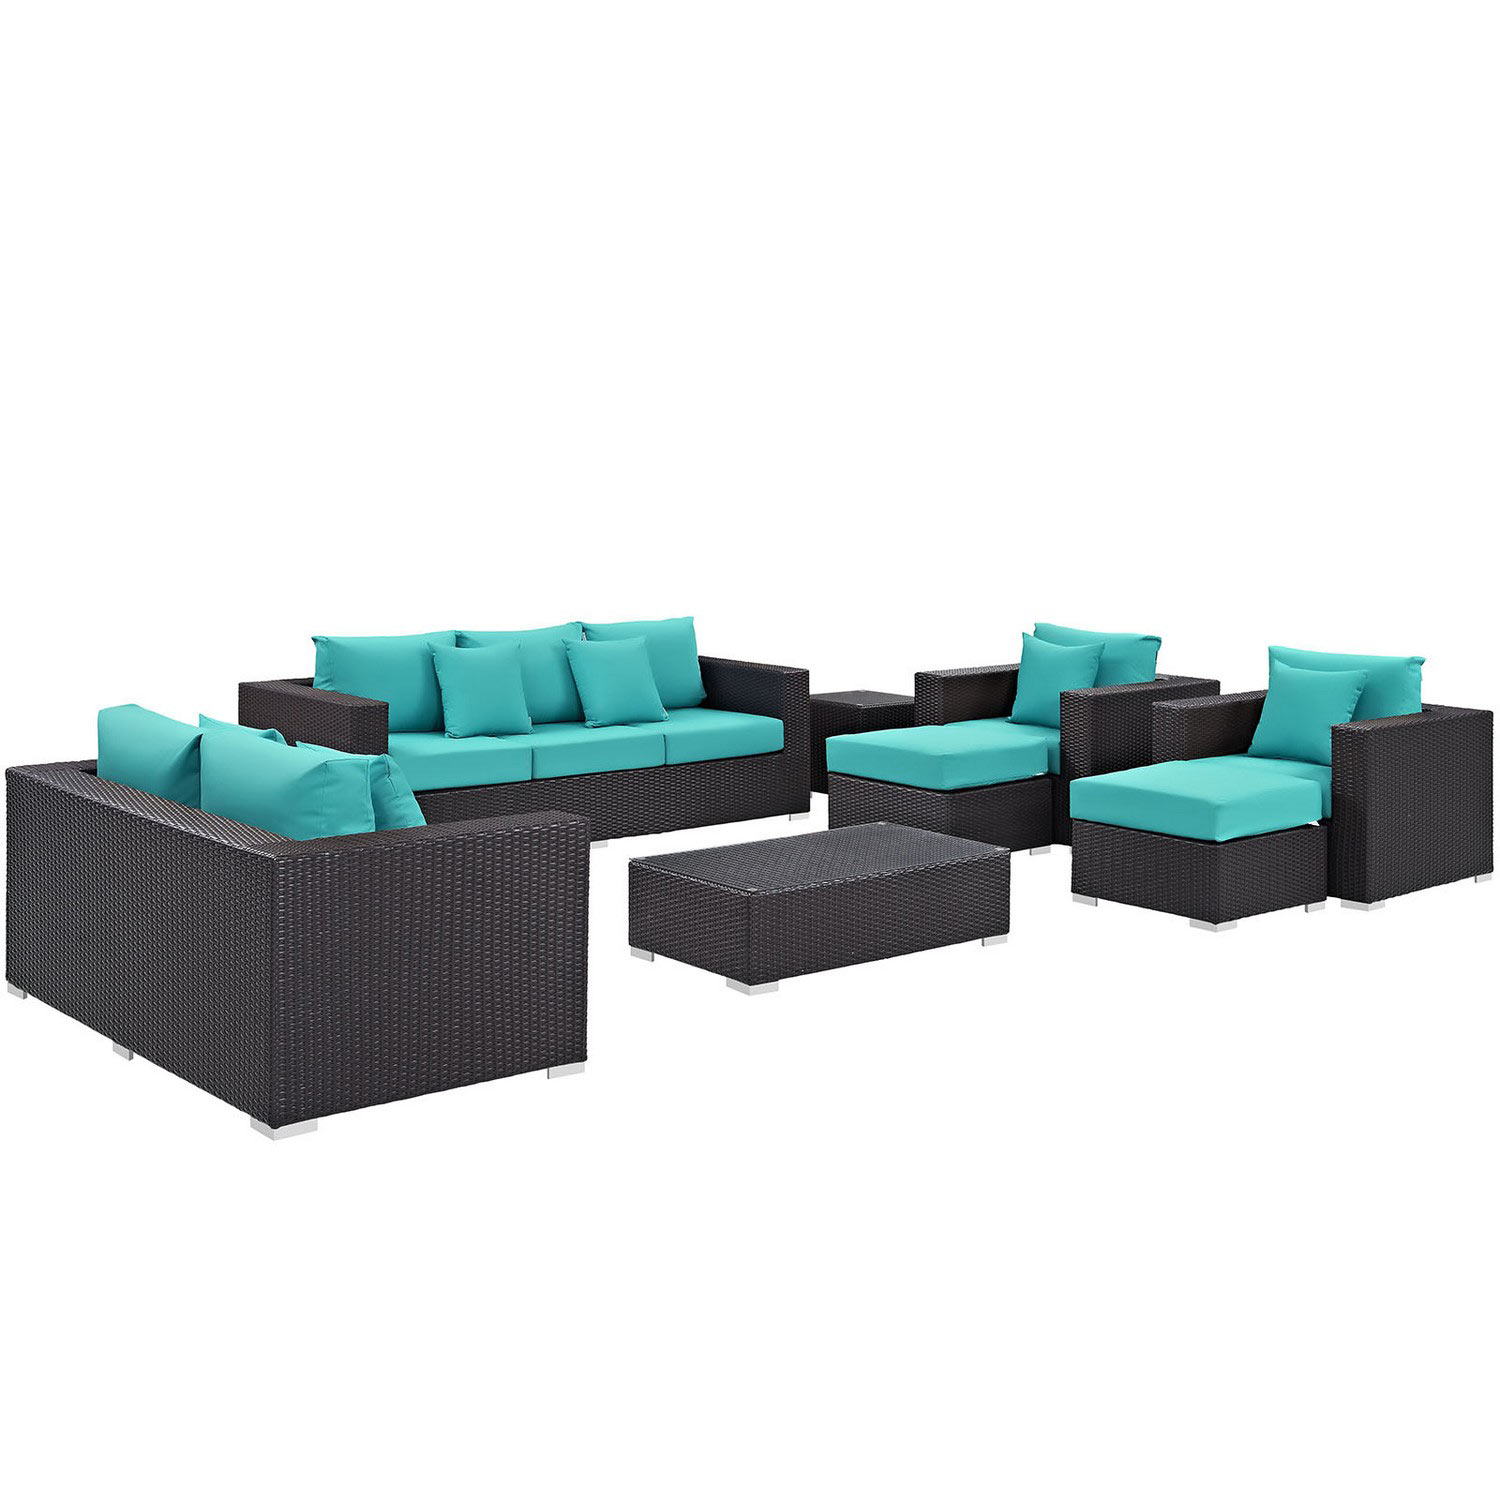 Modway Convene 9 Piece Outdoor Patio Sofa Set - Espresso Turquoise